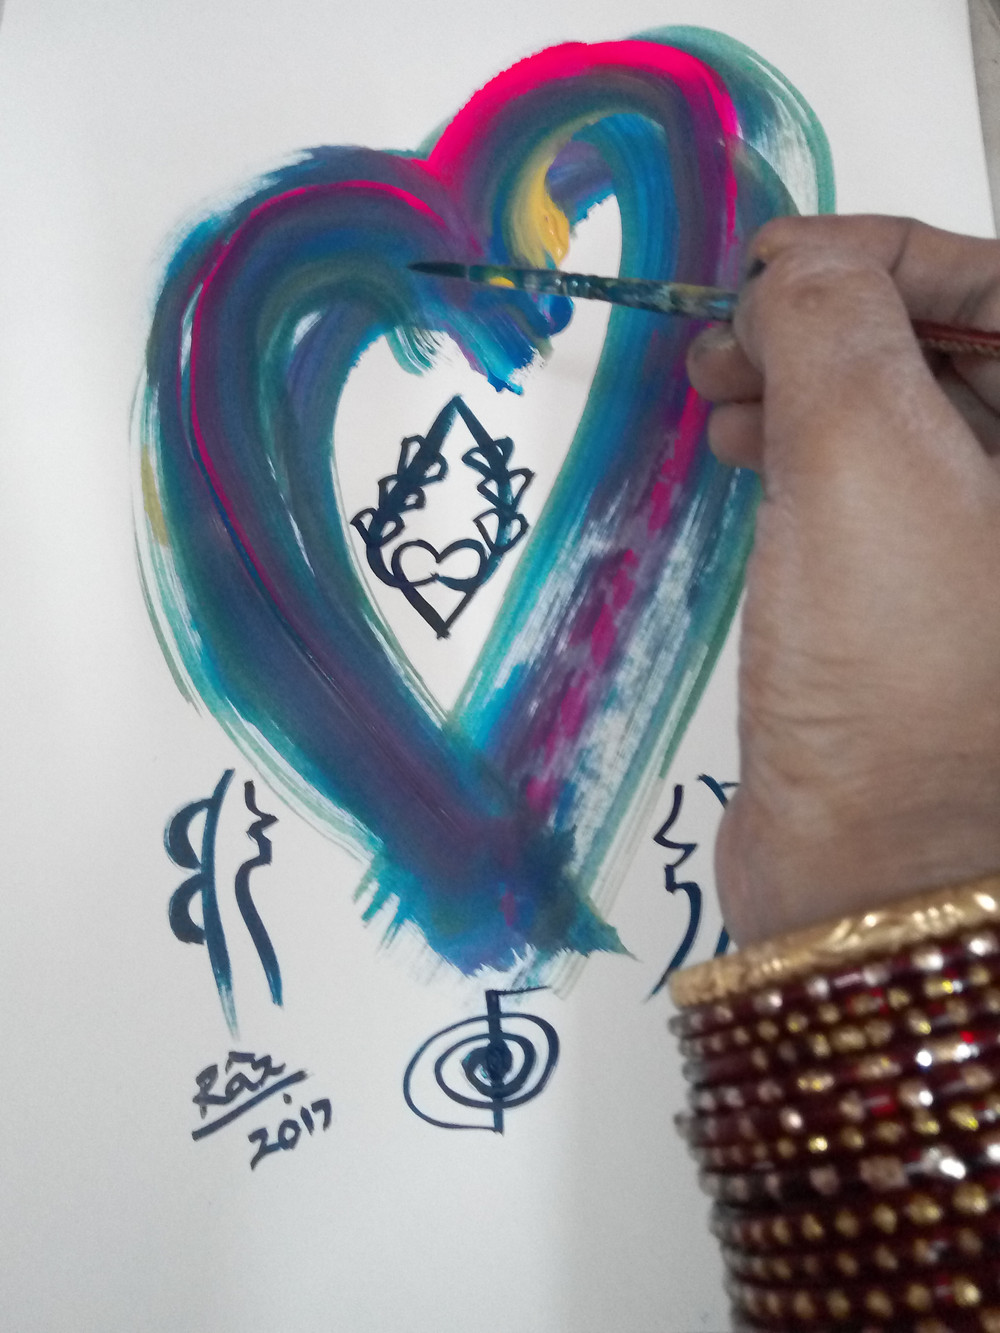 The Auroral Heart,Reiki art in progress  From a collection